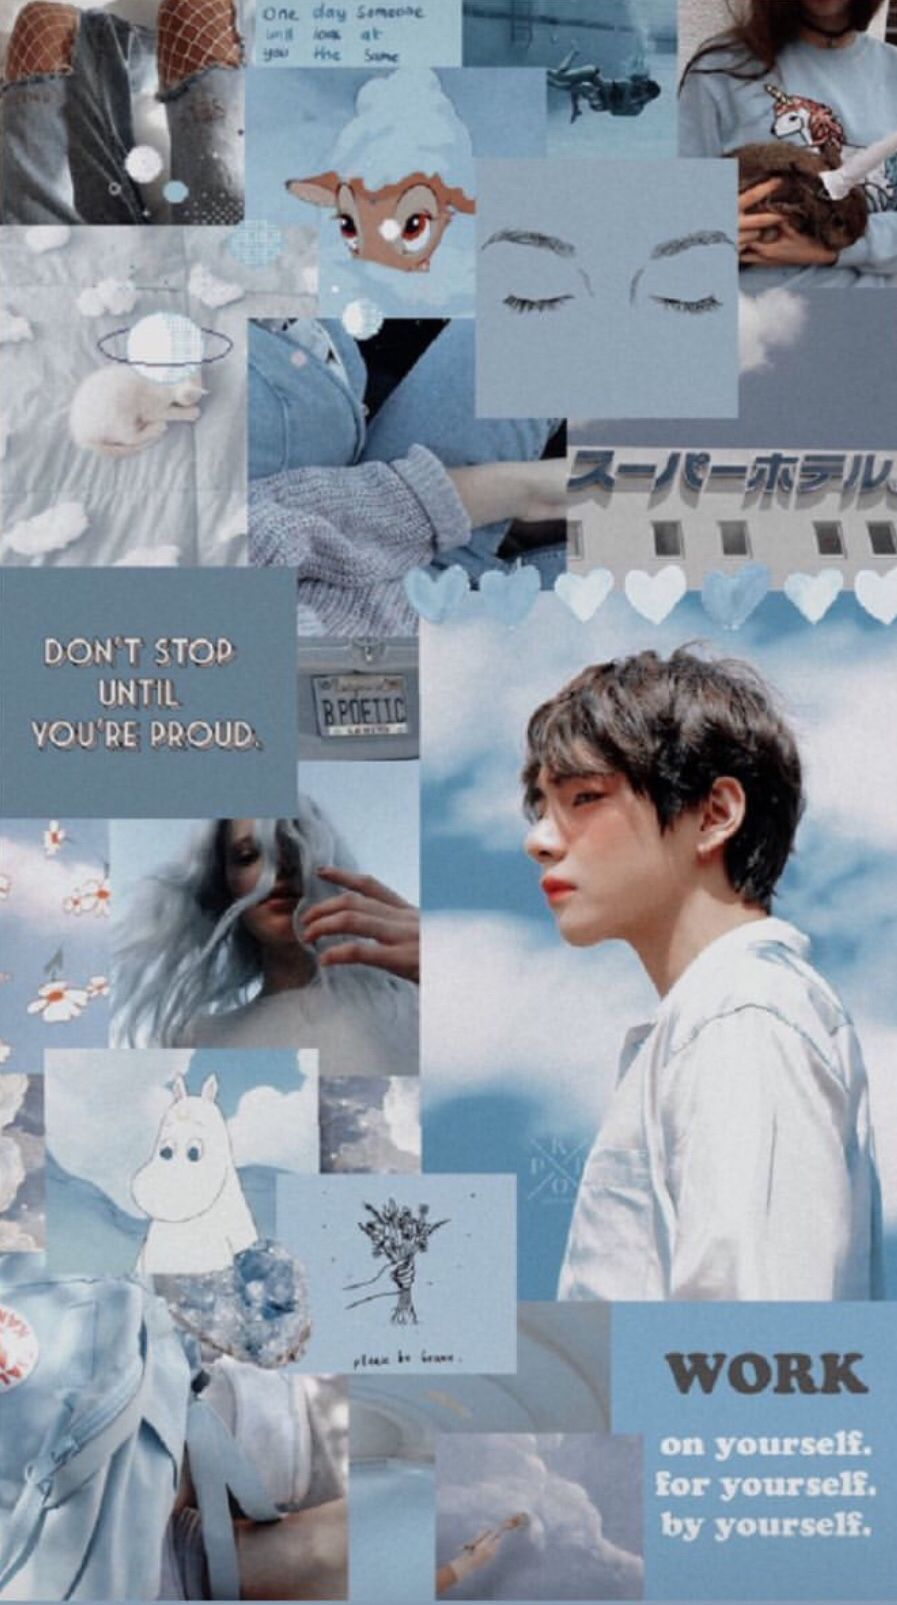 Bts Aesthetic Wallpaper For Mobile Phone Tablet Desktop Computer And Other Devices Hd Kim Taehyung Wallpaper Kpop Wallpaper Bts Aesthetic Wallpaper For Phone Bts wallpaper tablet hd